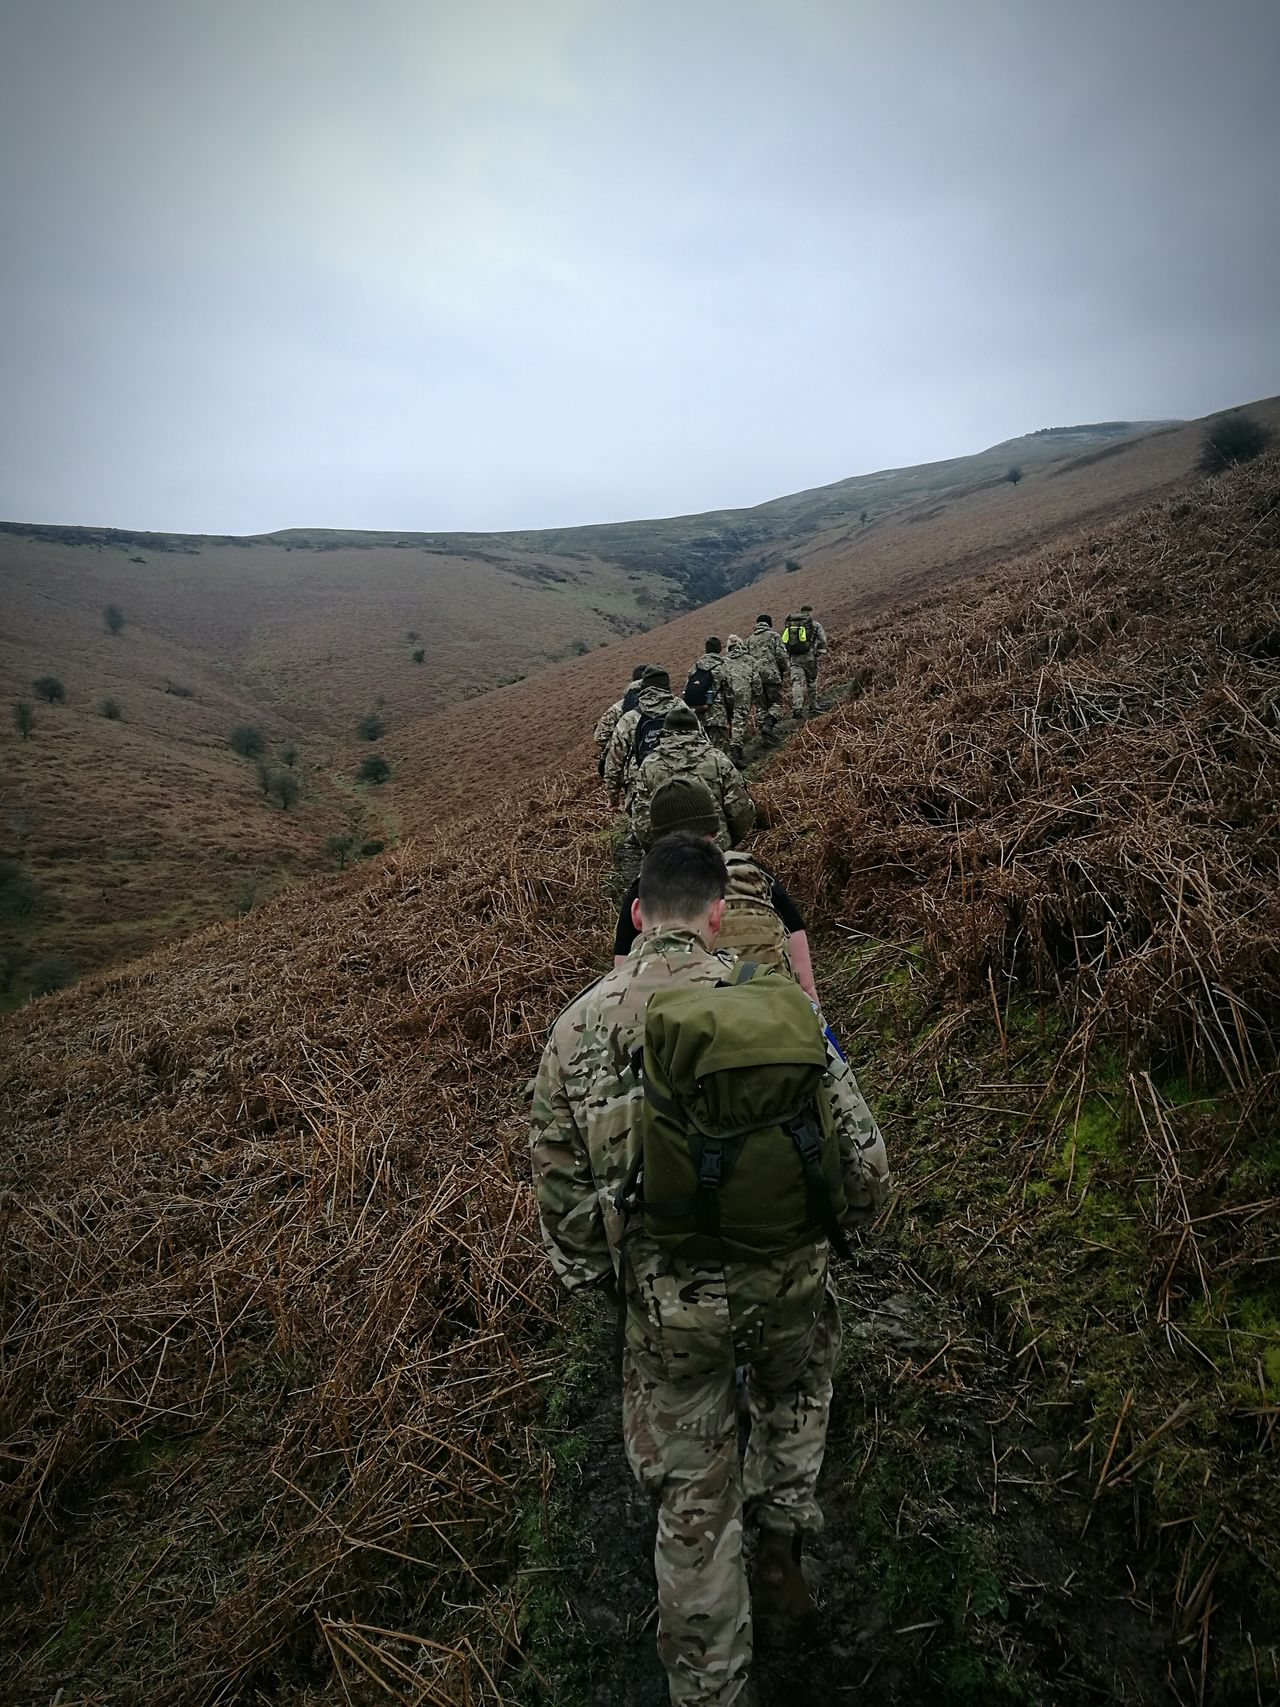 Rear View One Person People Outdoors Adult Cloud - Sky Adults Only Men Adventure Beauty In Nature One Man Only Day Sky Only Men Army Huawei P9 Leica Army Soldier Army Life Hike EyeEmNewHere